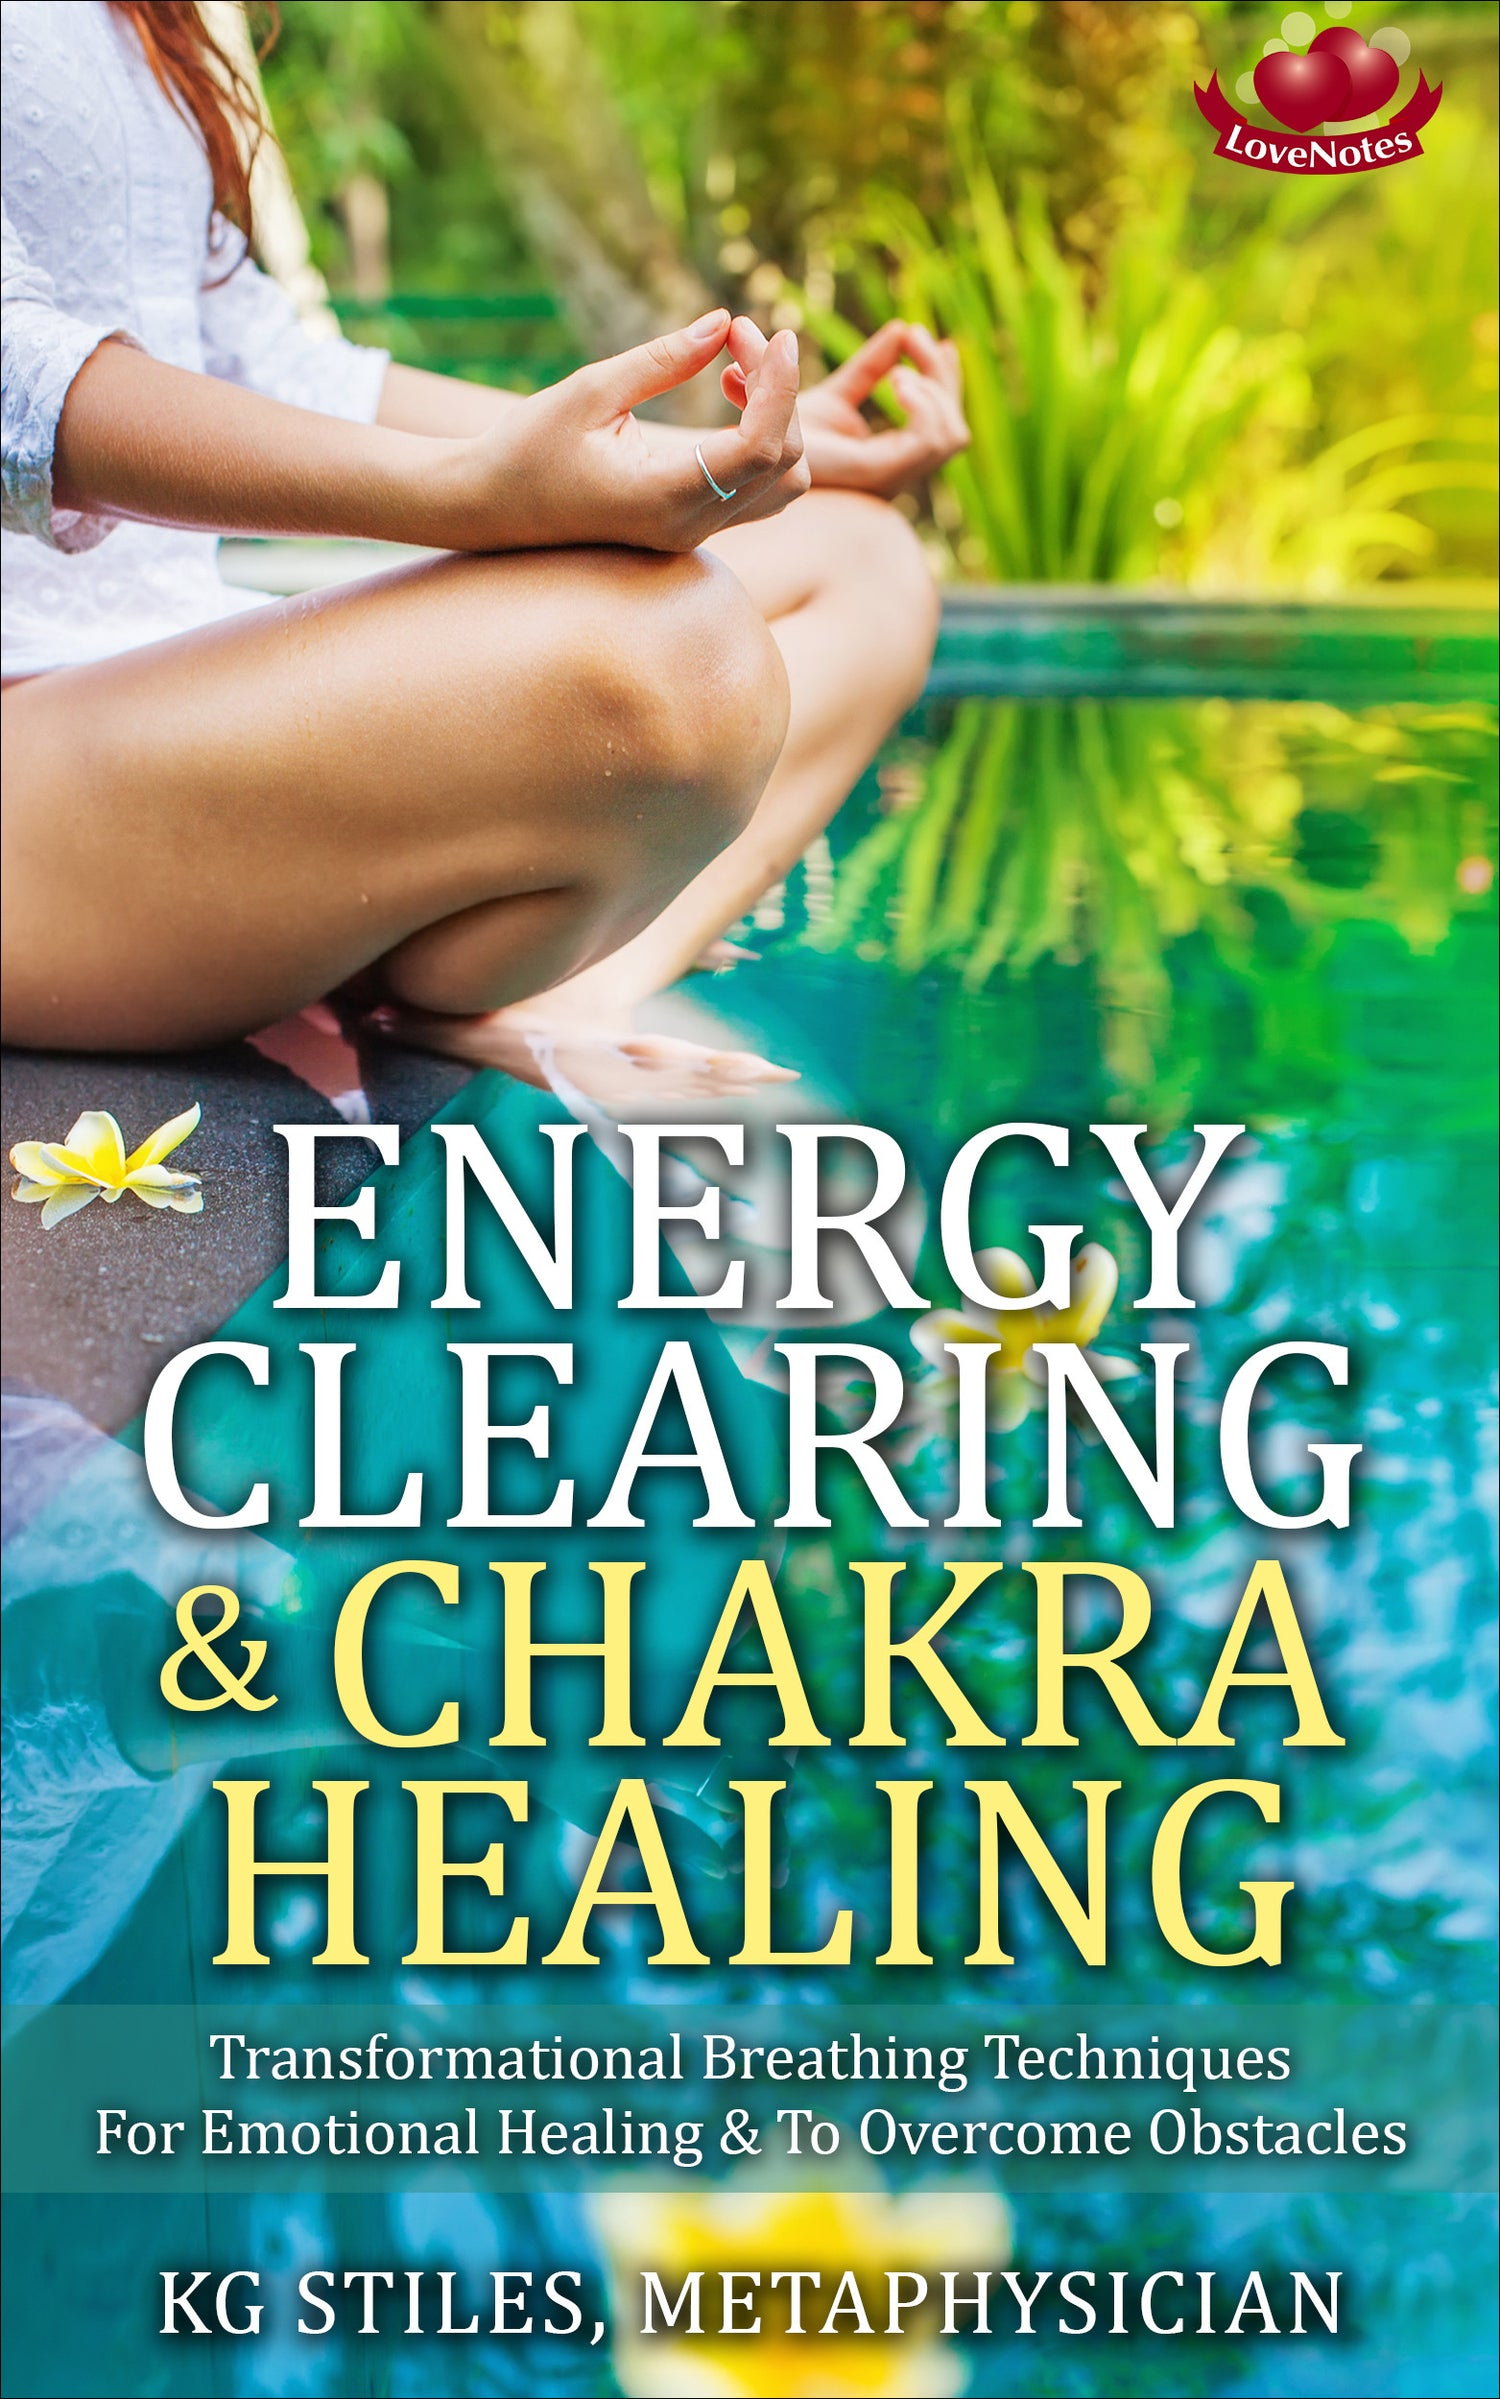 ENERGY CLEARING & CHAKRA HEALING Transformational Breathing Techniques For  Emotional Healing & To Overcome Obstacles By KG Stiles